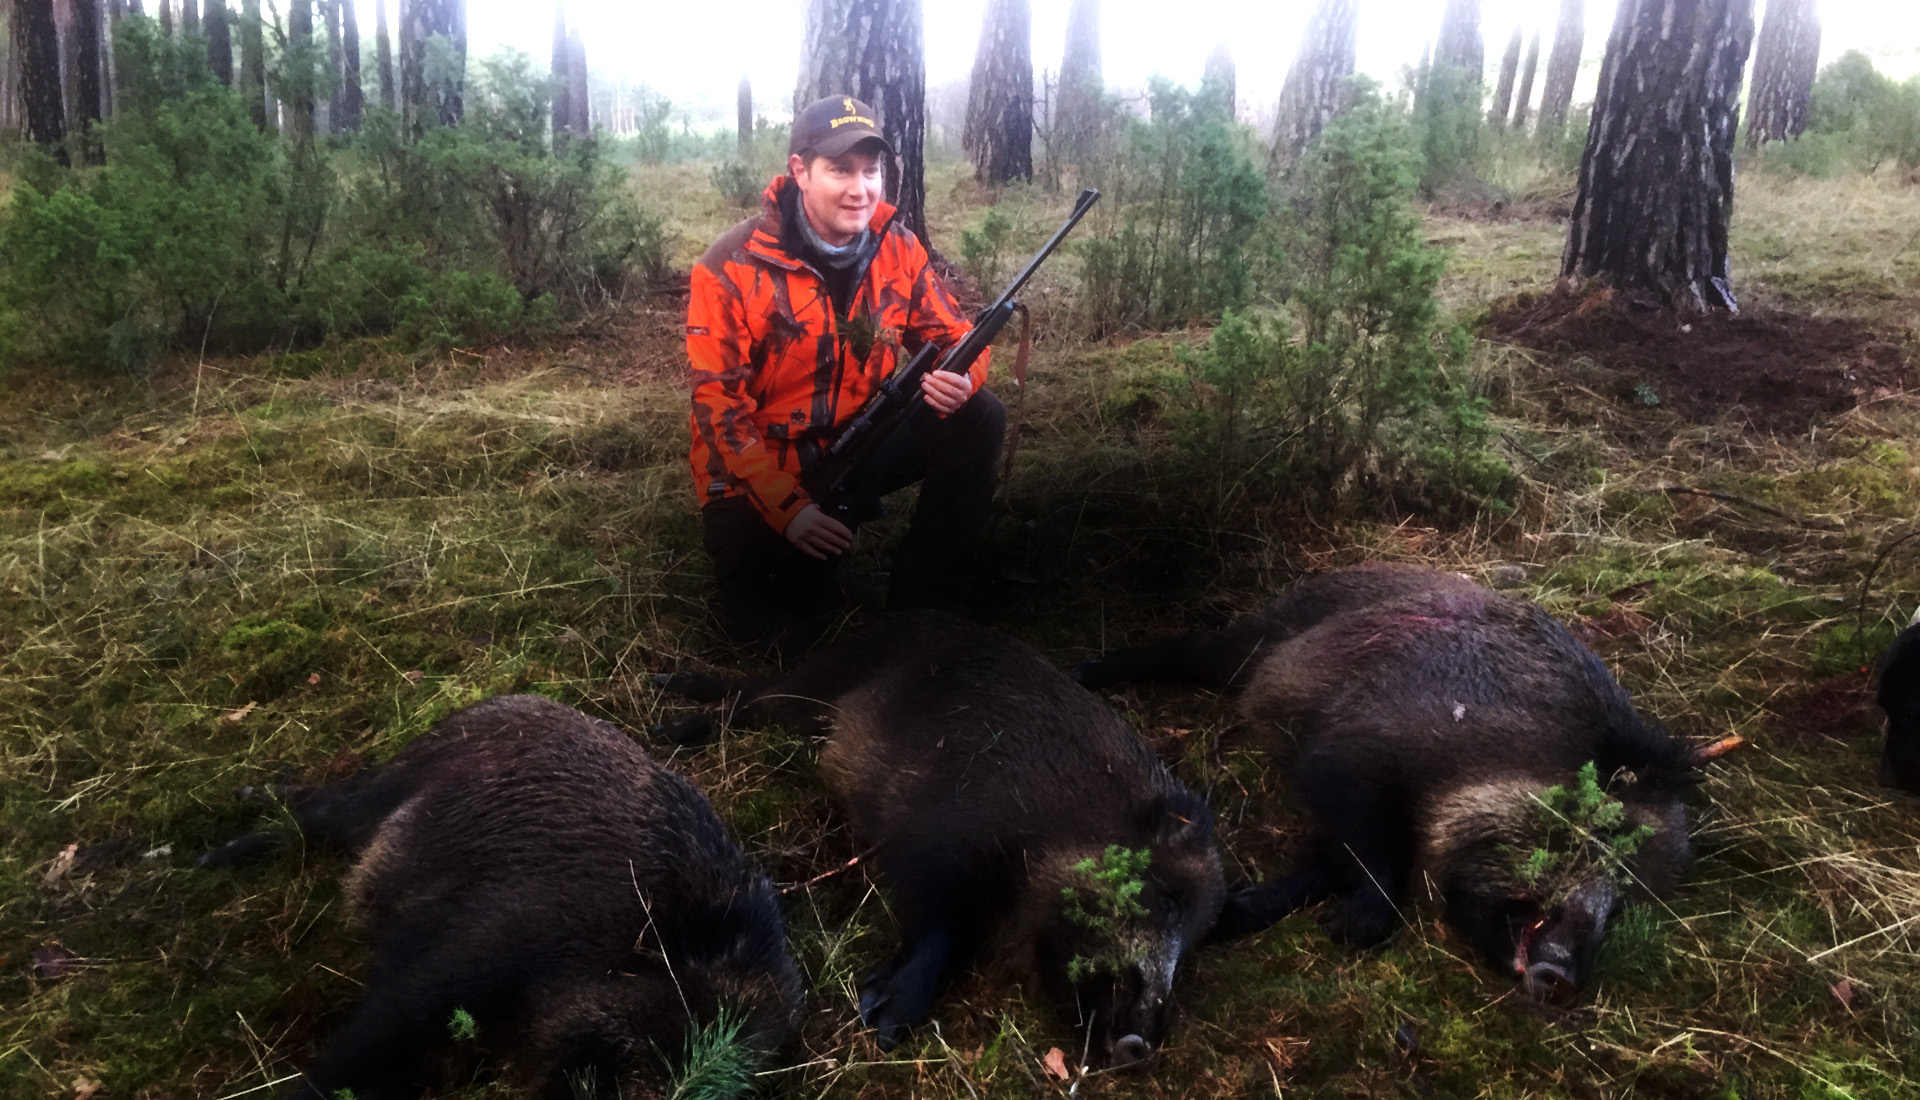 hunter with 3 wild boar shoot on 1 drive